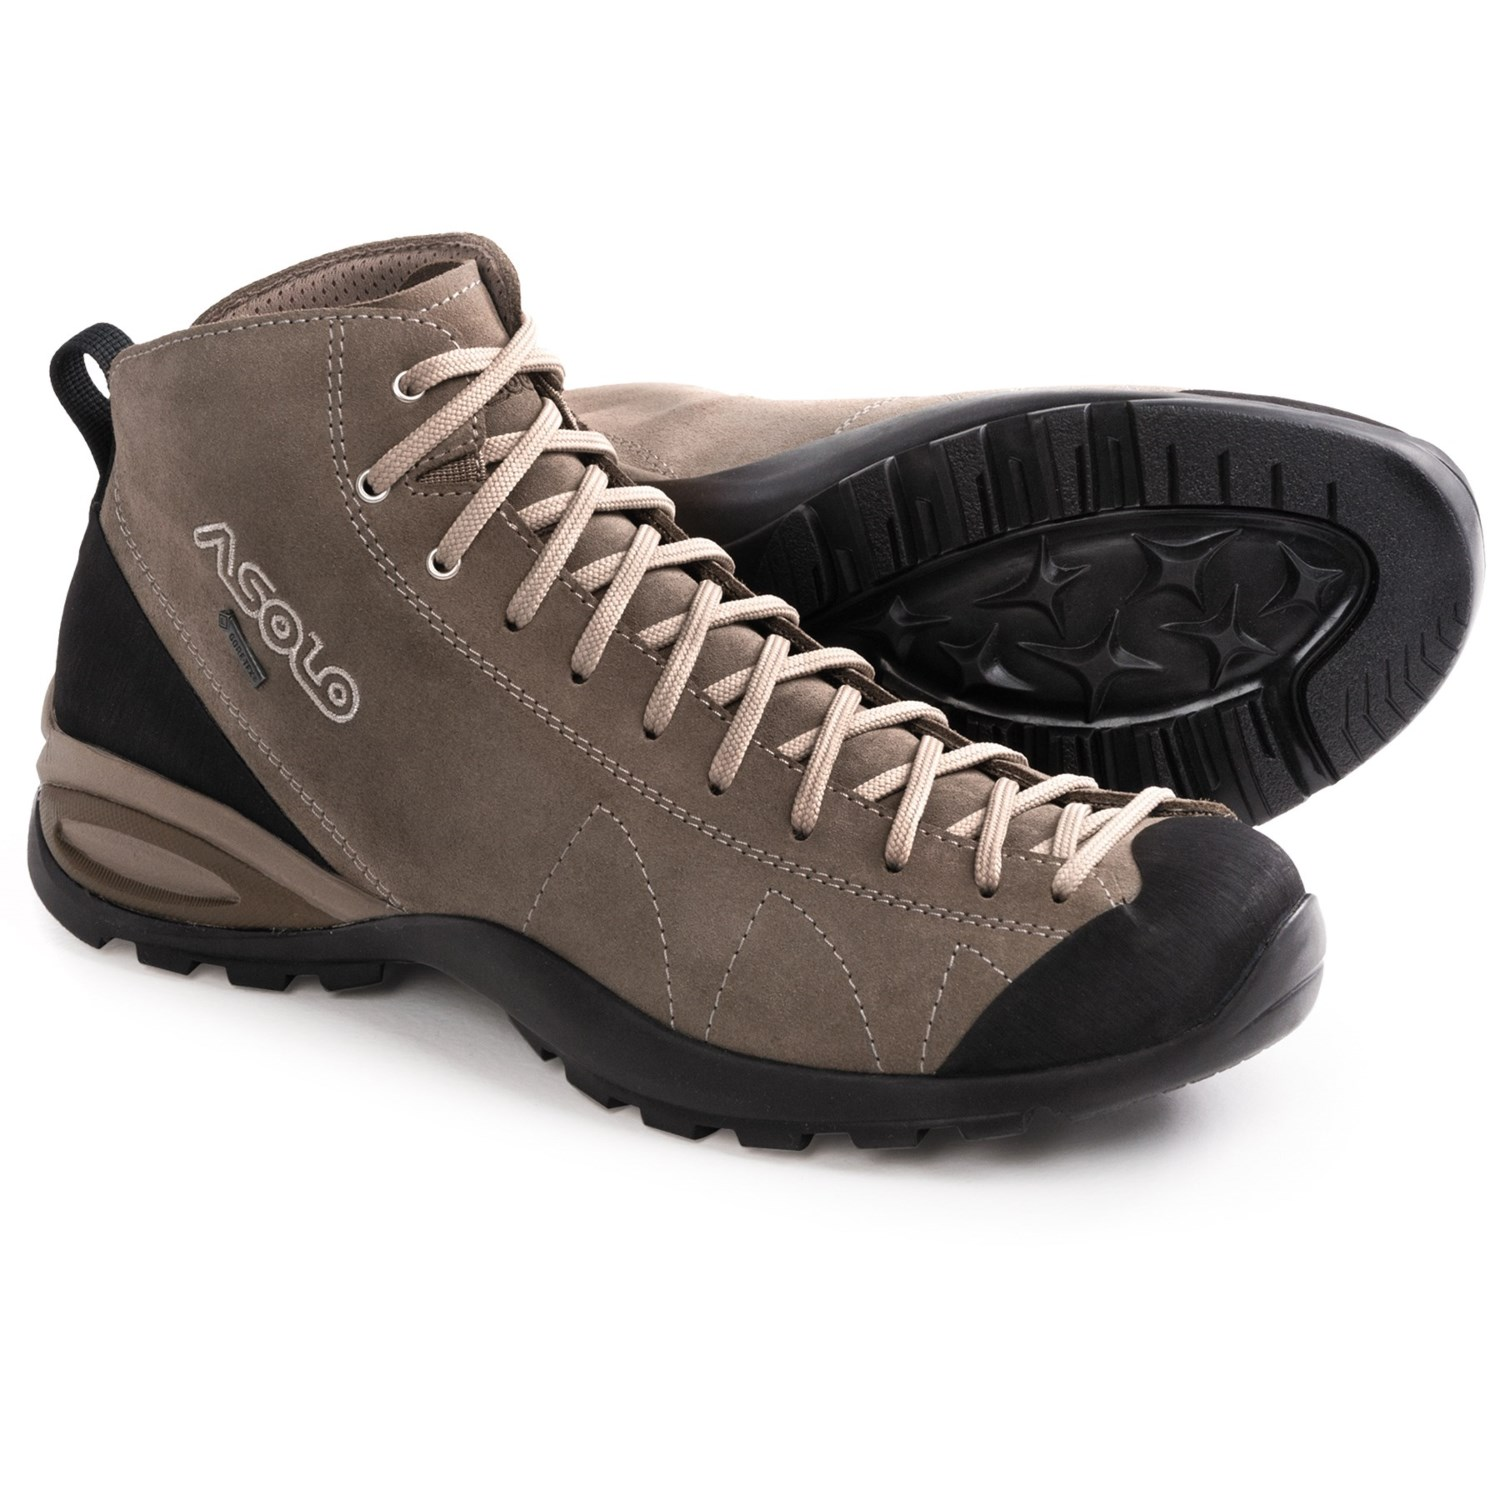 21824bb911a Asolo Cactus Gore-Tex® Suede Hiking Boots - Waterproof (For Men)